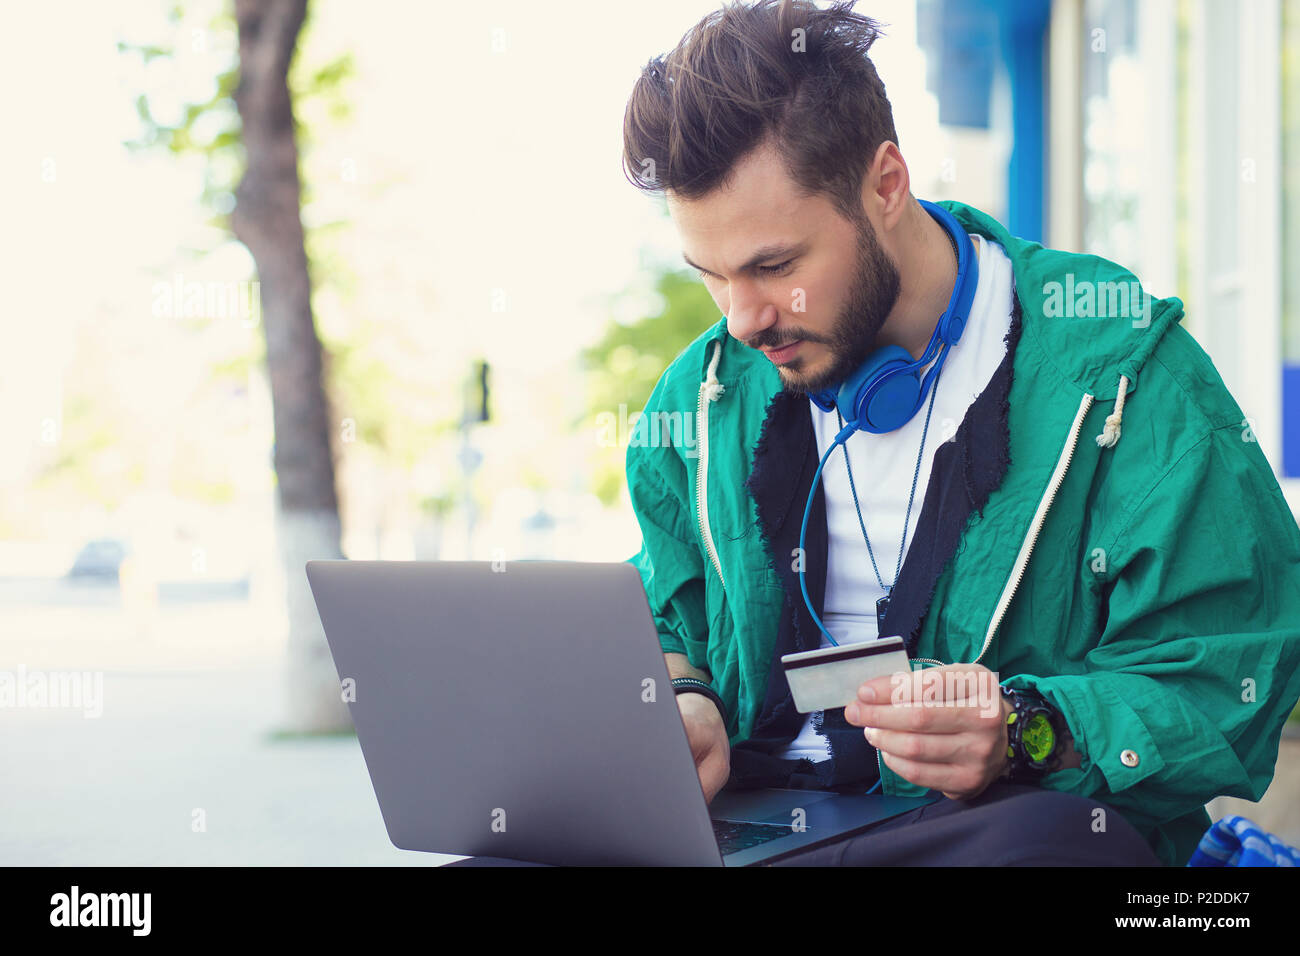 Stylish hipster man sitting on street with laptop on knees and doing online purchase with credit card - Stock Image